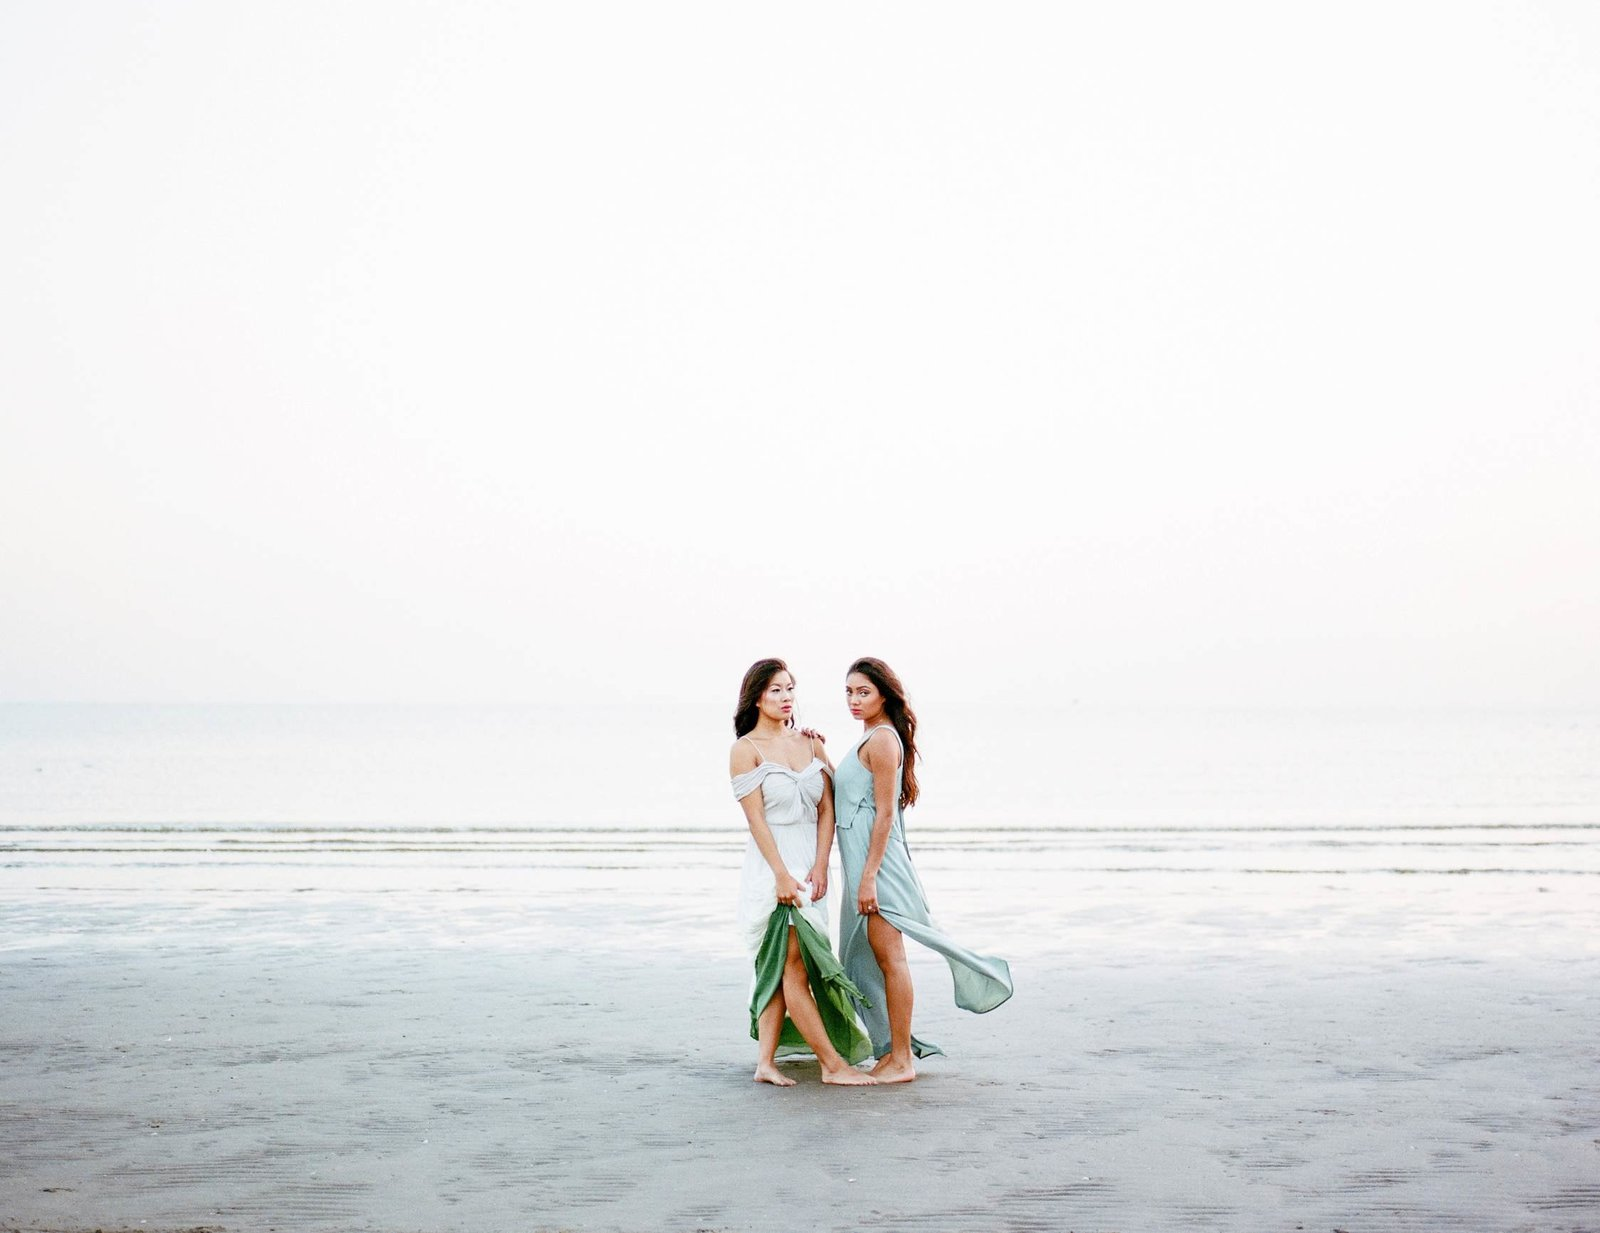 Bridal wedding inspiration for beach weddings